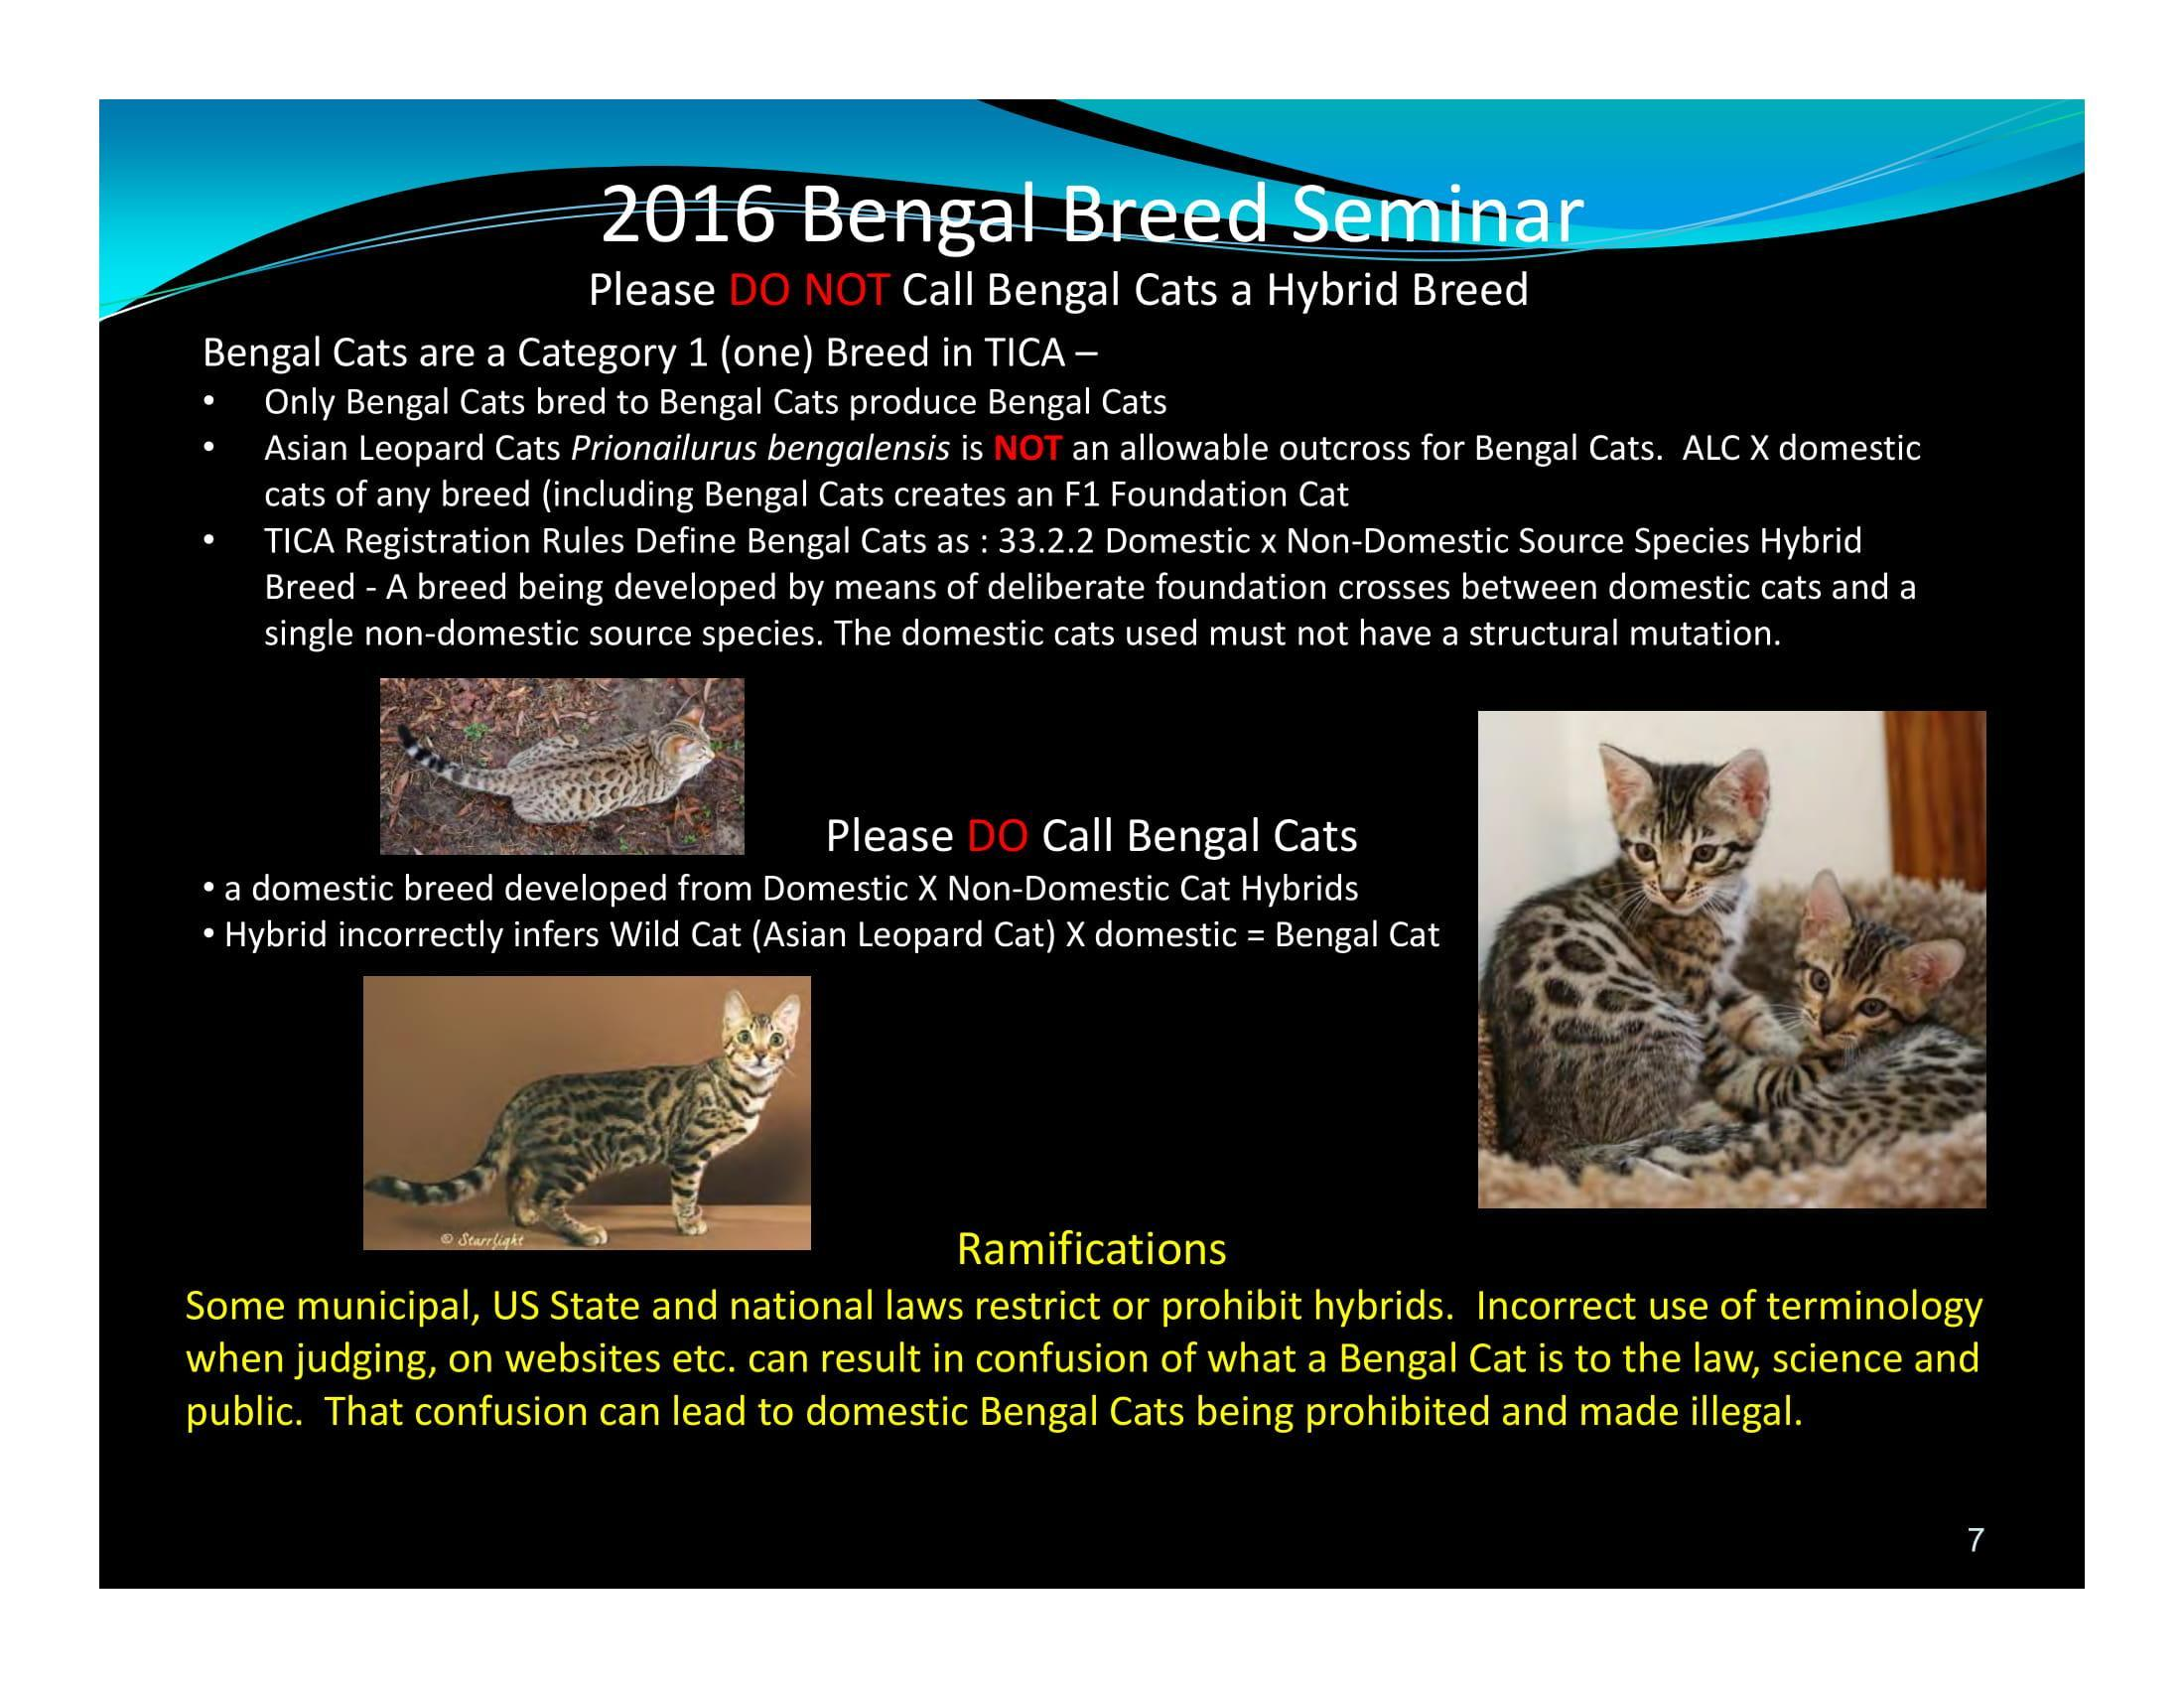 Bengal Cat,Bengal Cat Breed,Bengal Cat Information,Bengal Cat History,About the Bengal Cat,What is a Bengal Cat,Bengal Cat Breeding,The Bengal Breed Standards,Asian Leopard Cat,Leopard Cat,Bengal Cat Breed Seminar,TICA